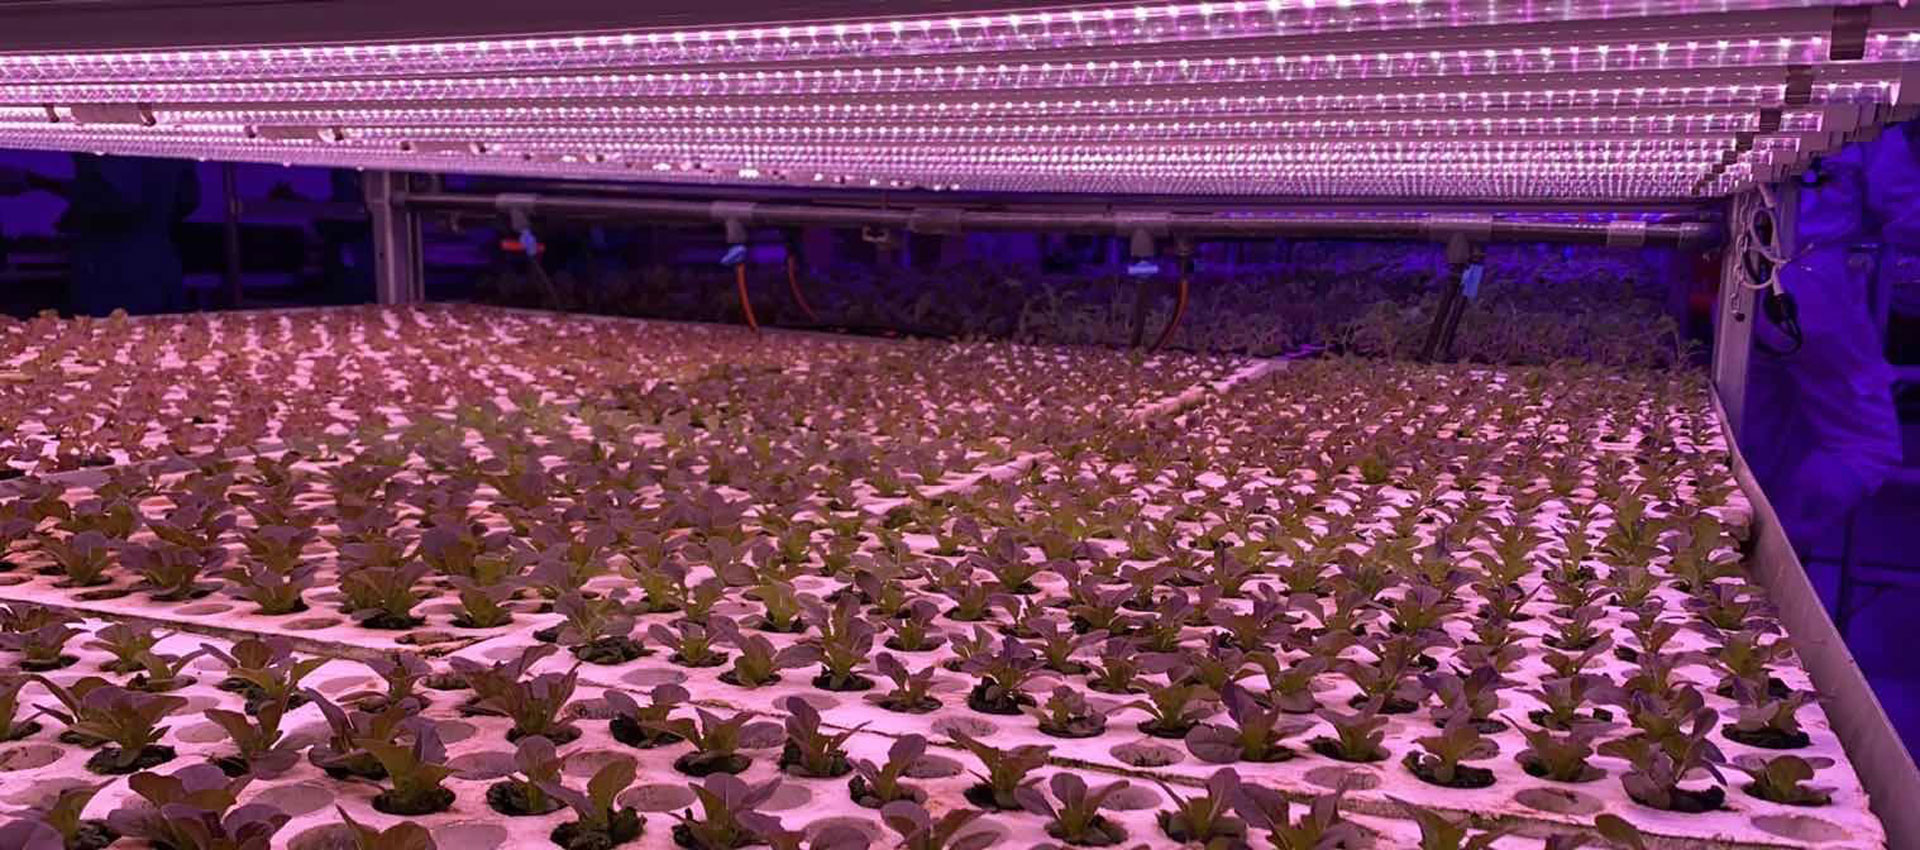 Vertical Farming & LED Grow Lights